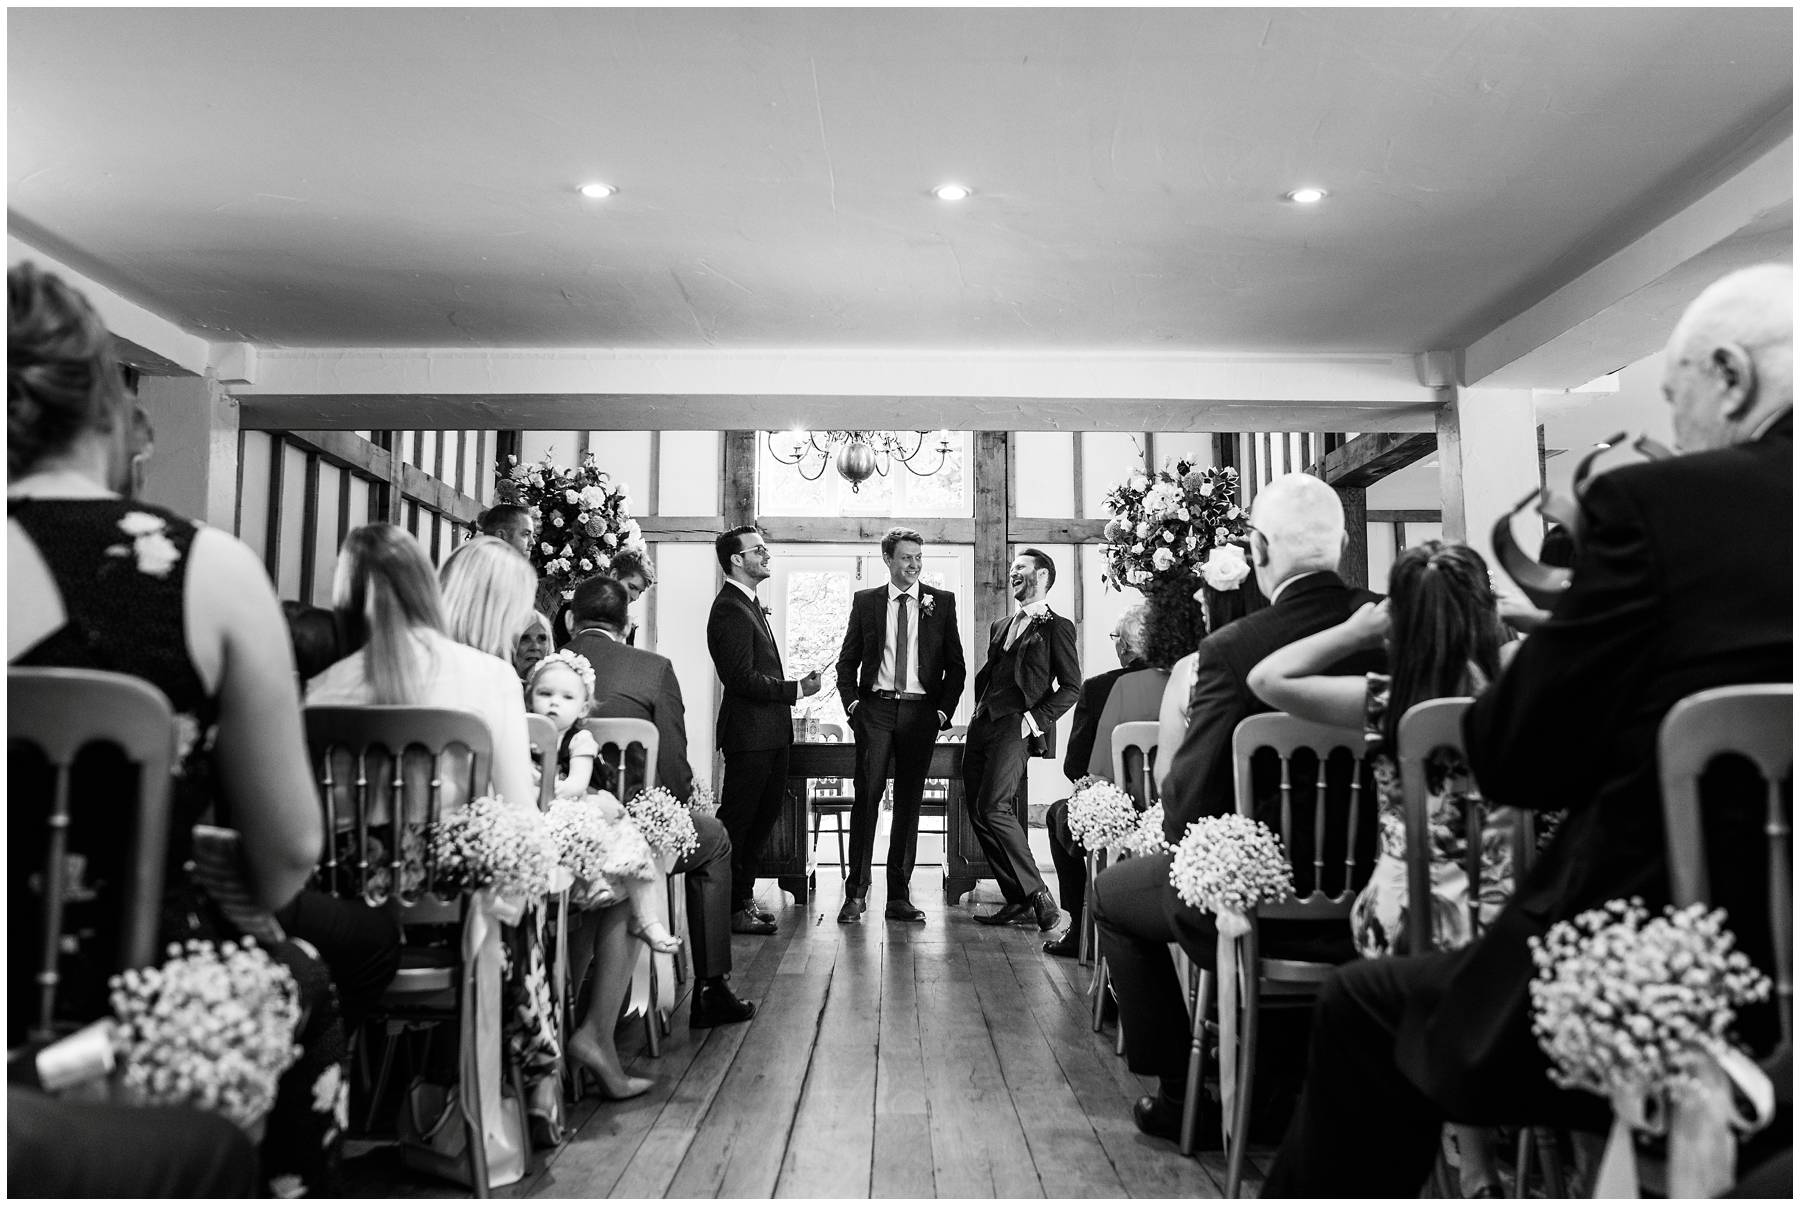 Vaulty Manor, Maldon Wedding Venue